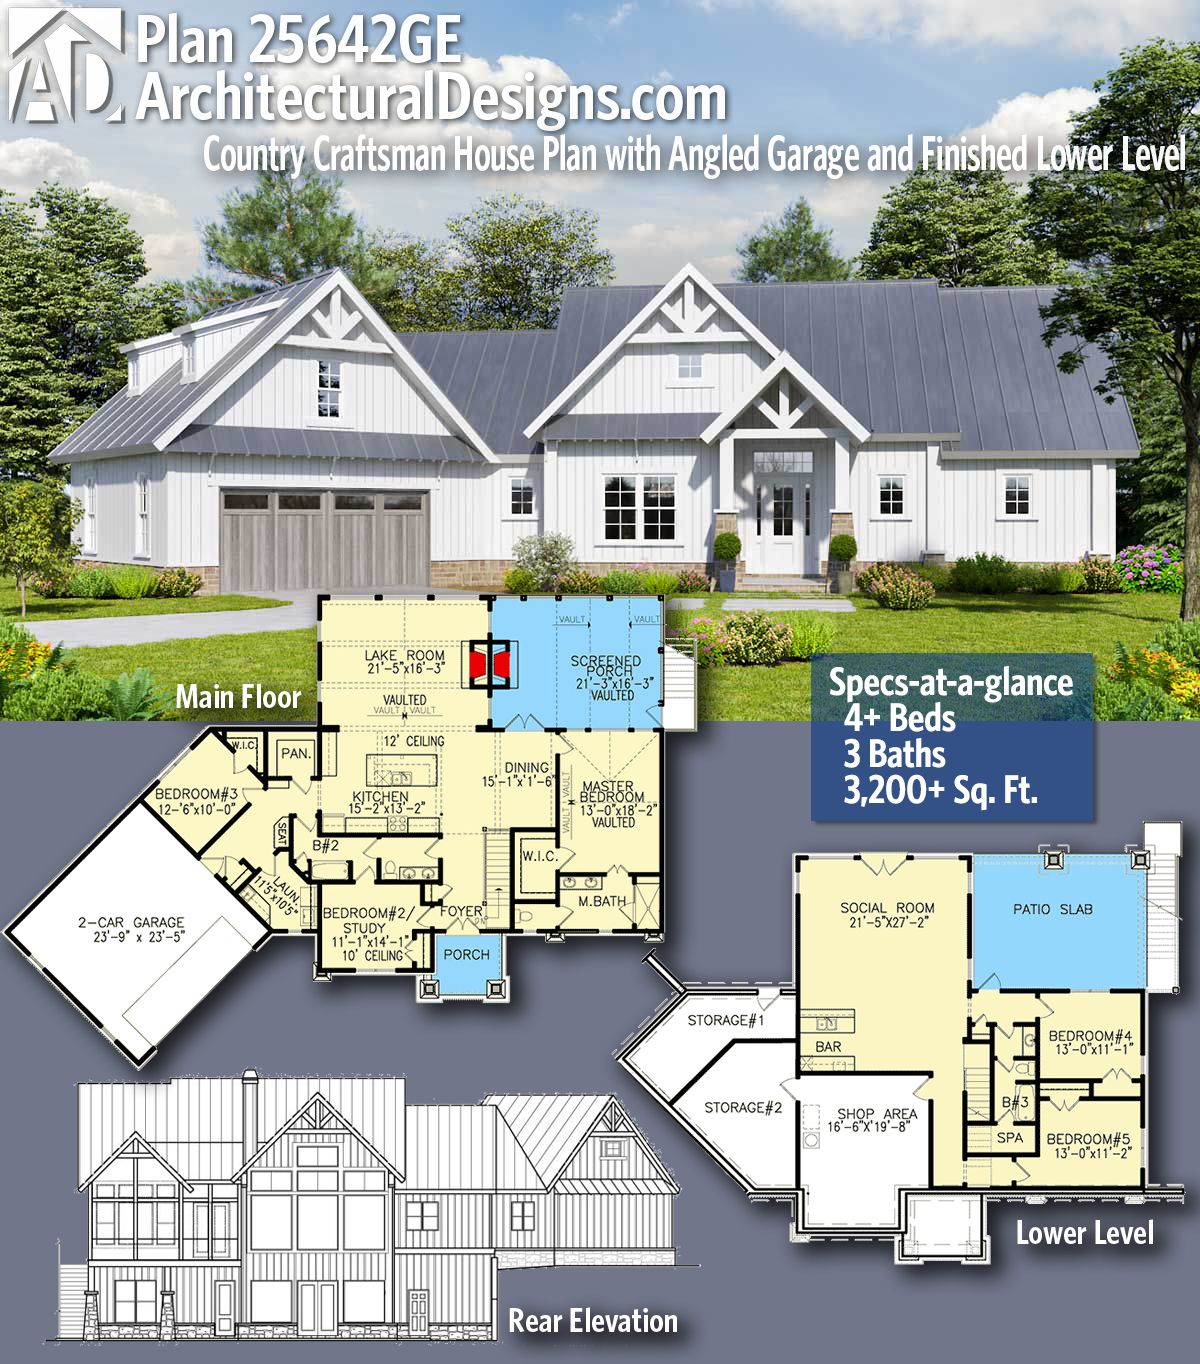 Architectural Designs Craftsman House Plan 25642GE gives